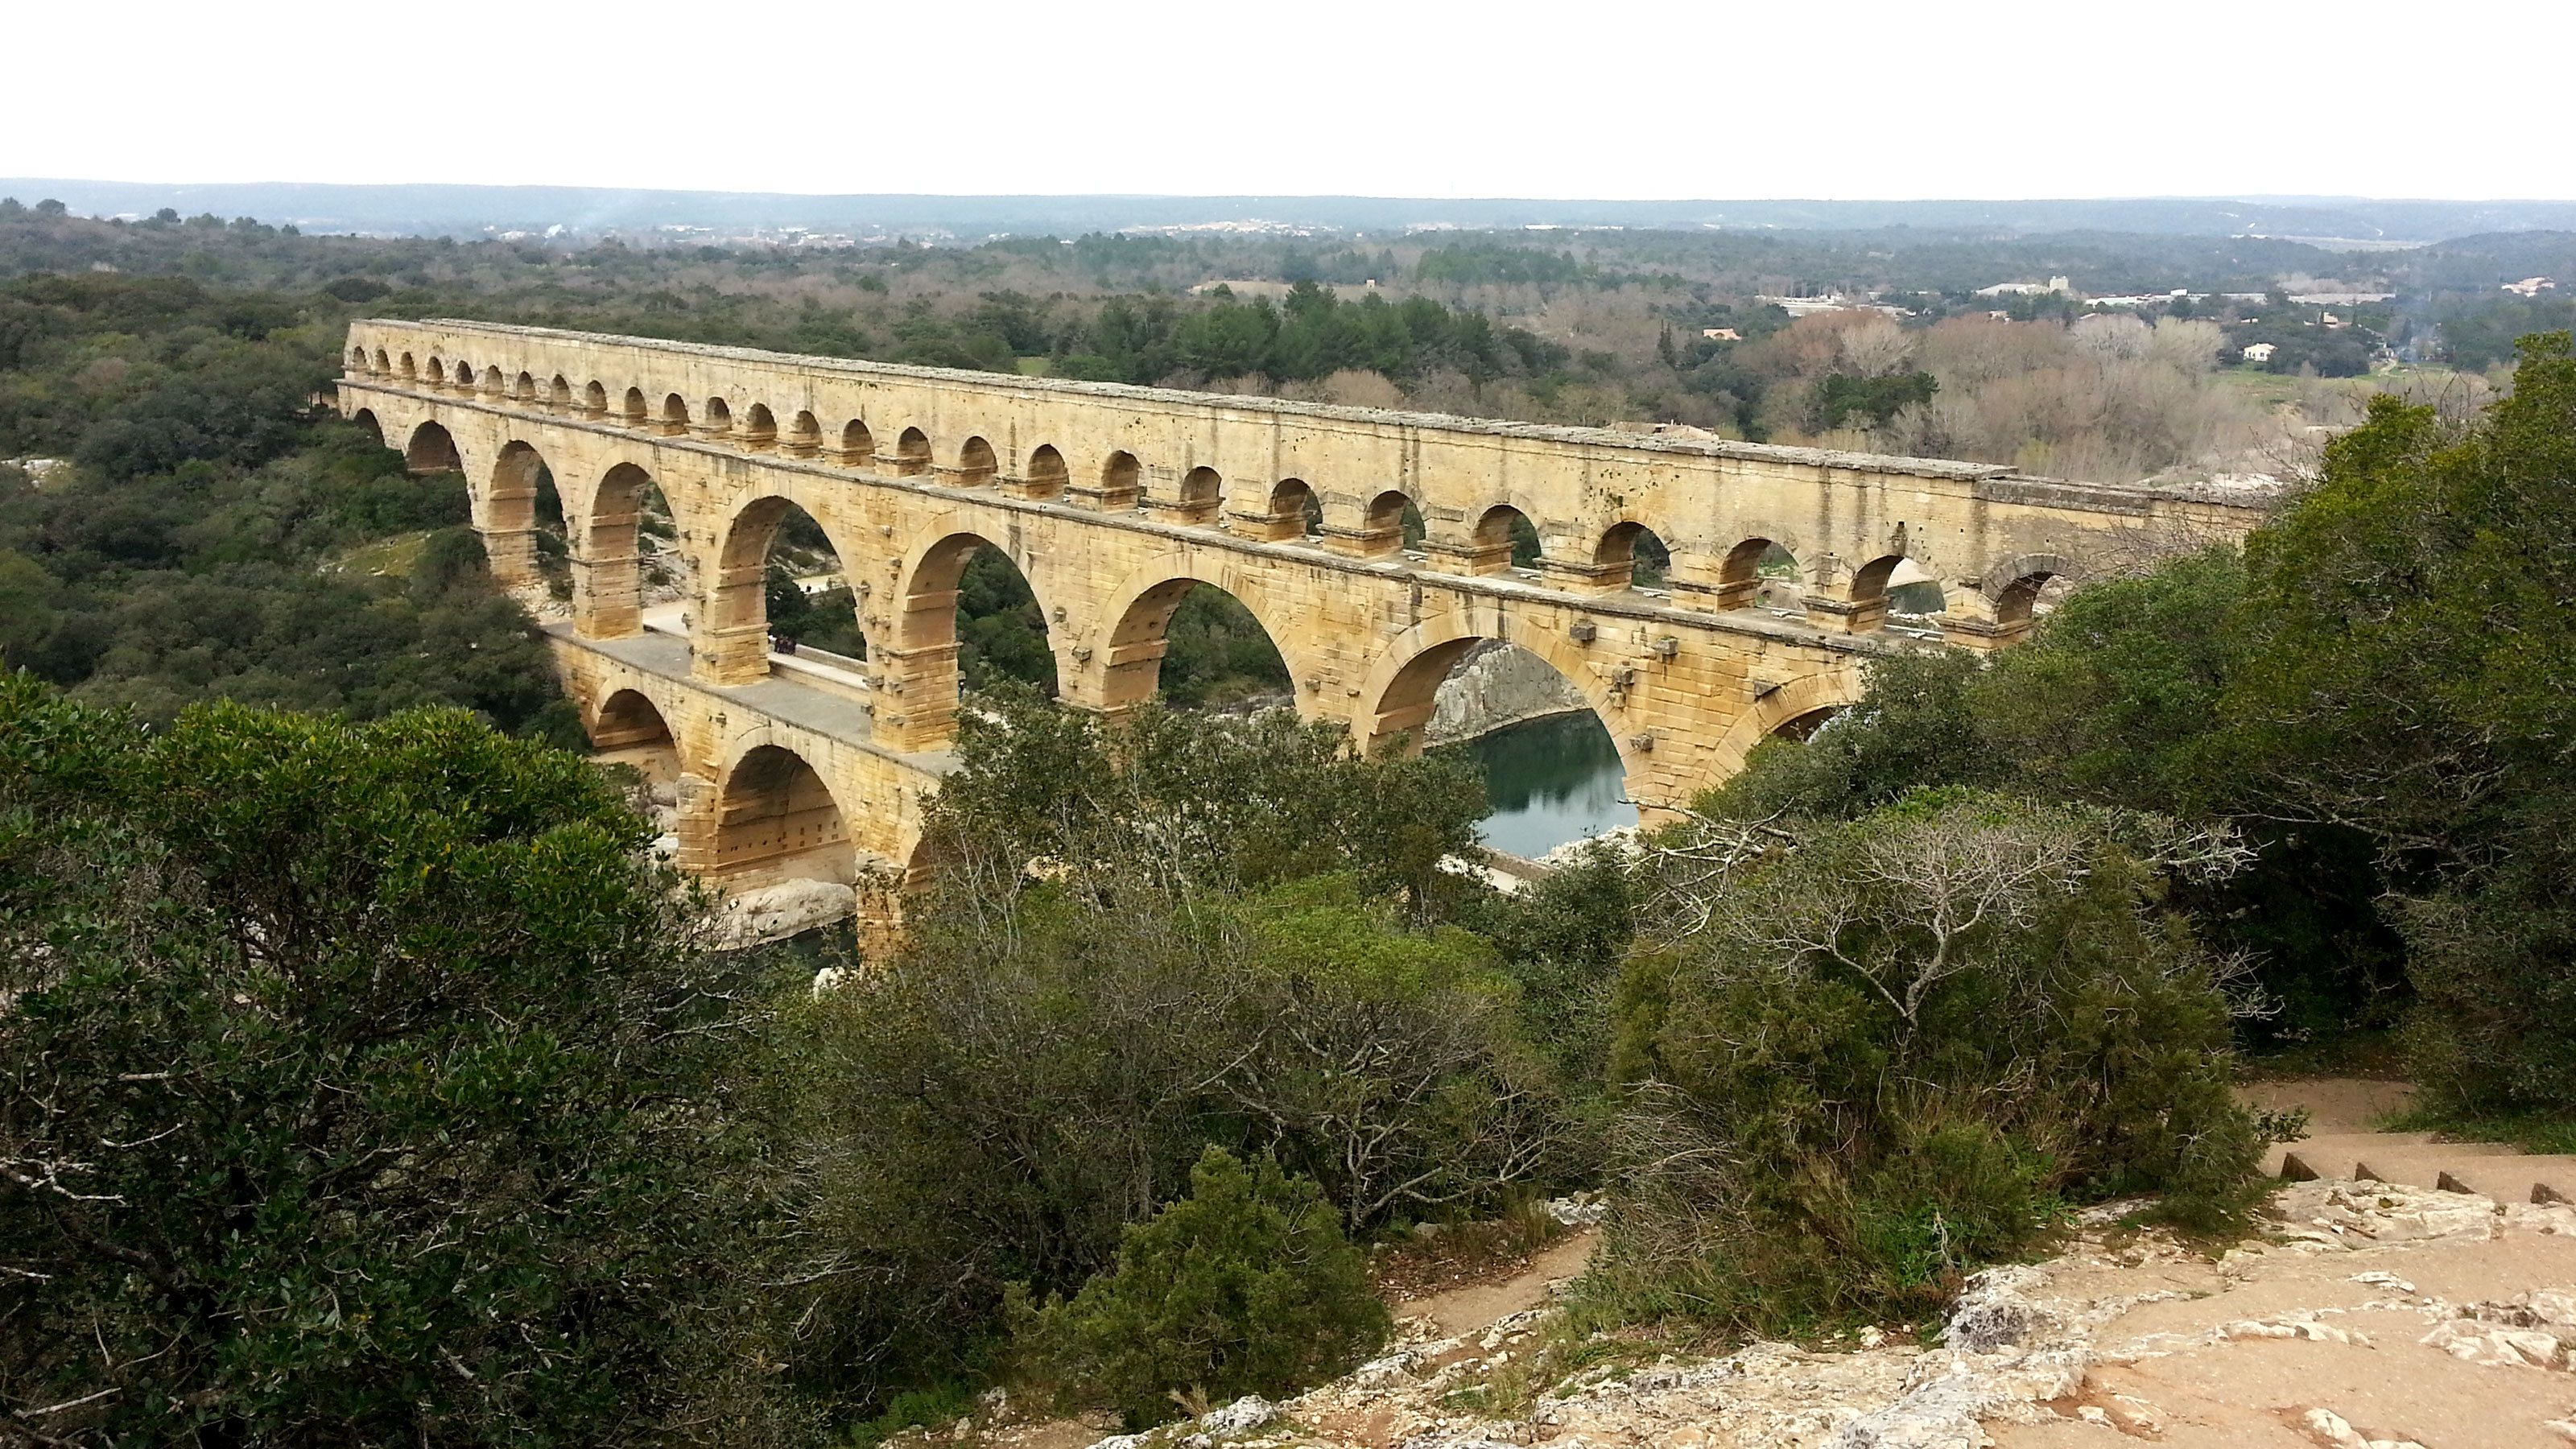 looking at the Pont du Gard from the top of a hill in France